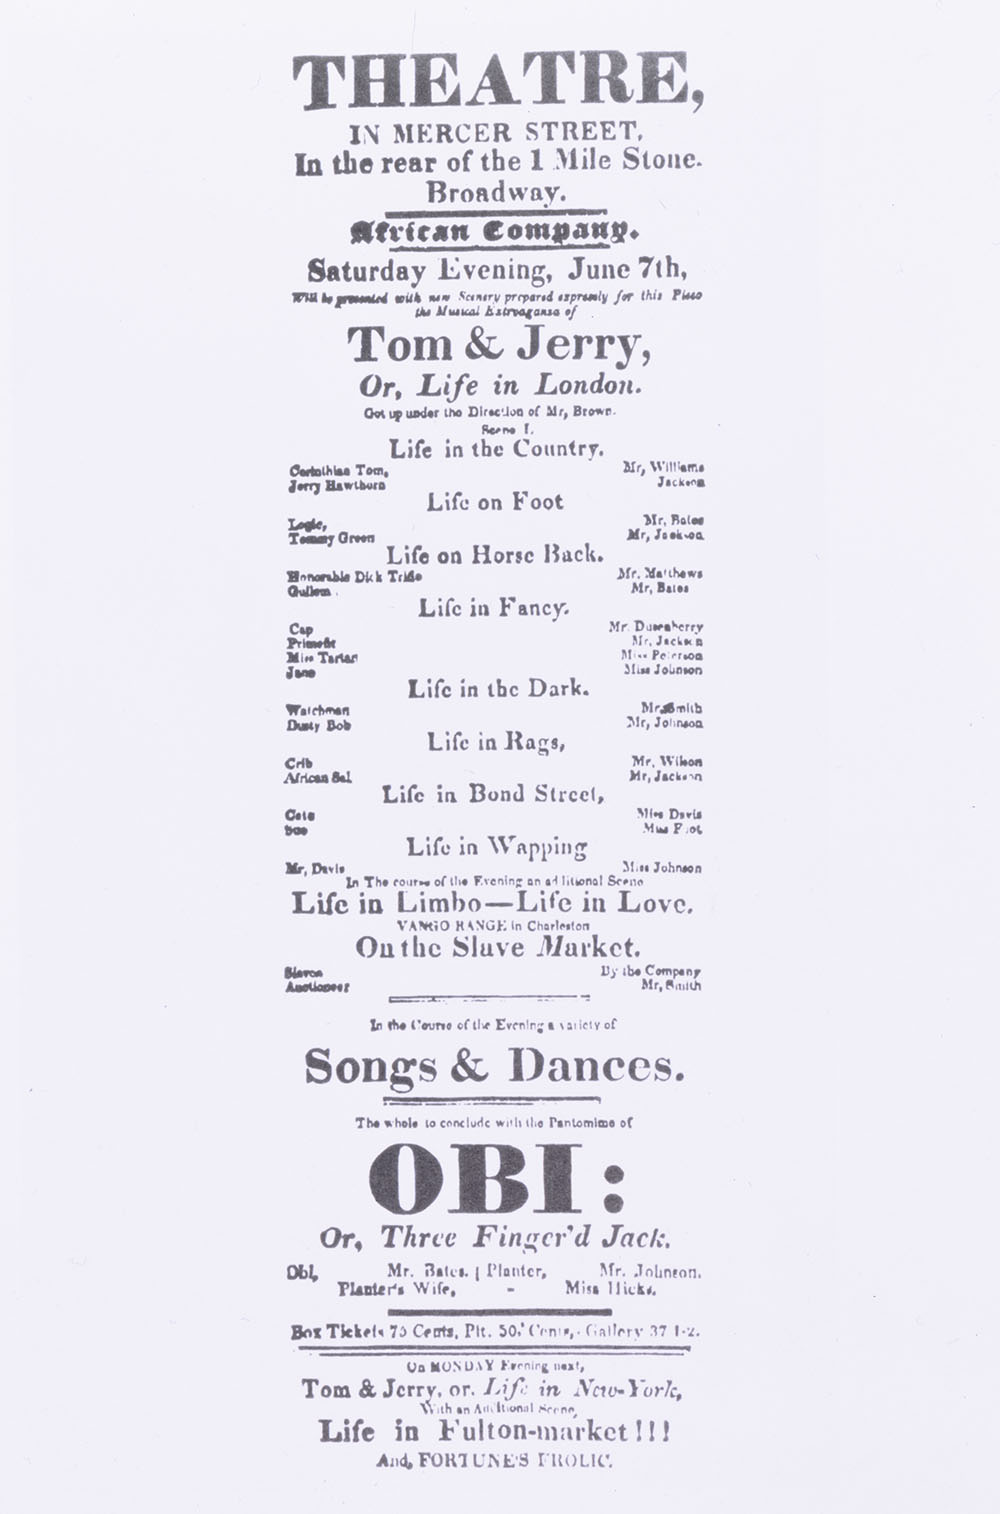 A poster advertising performances at the Grove Theatre.